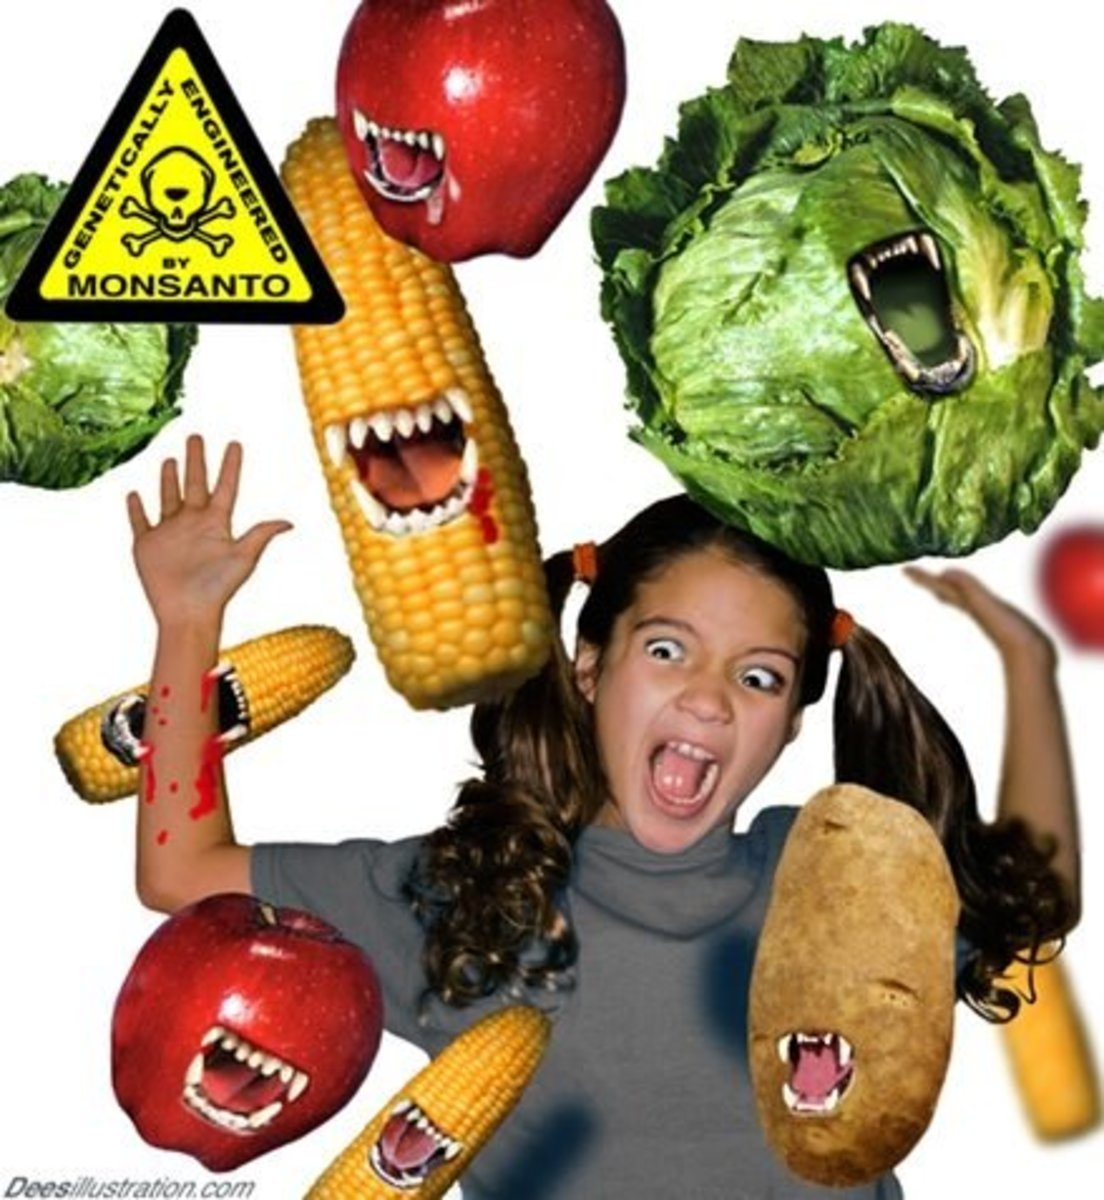 Food Inc and Genetically Modified Foods